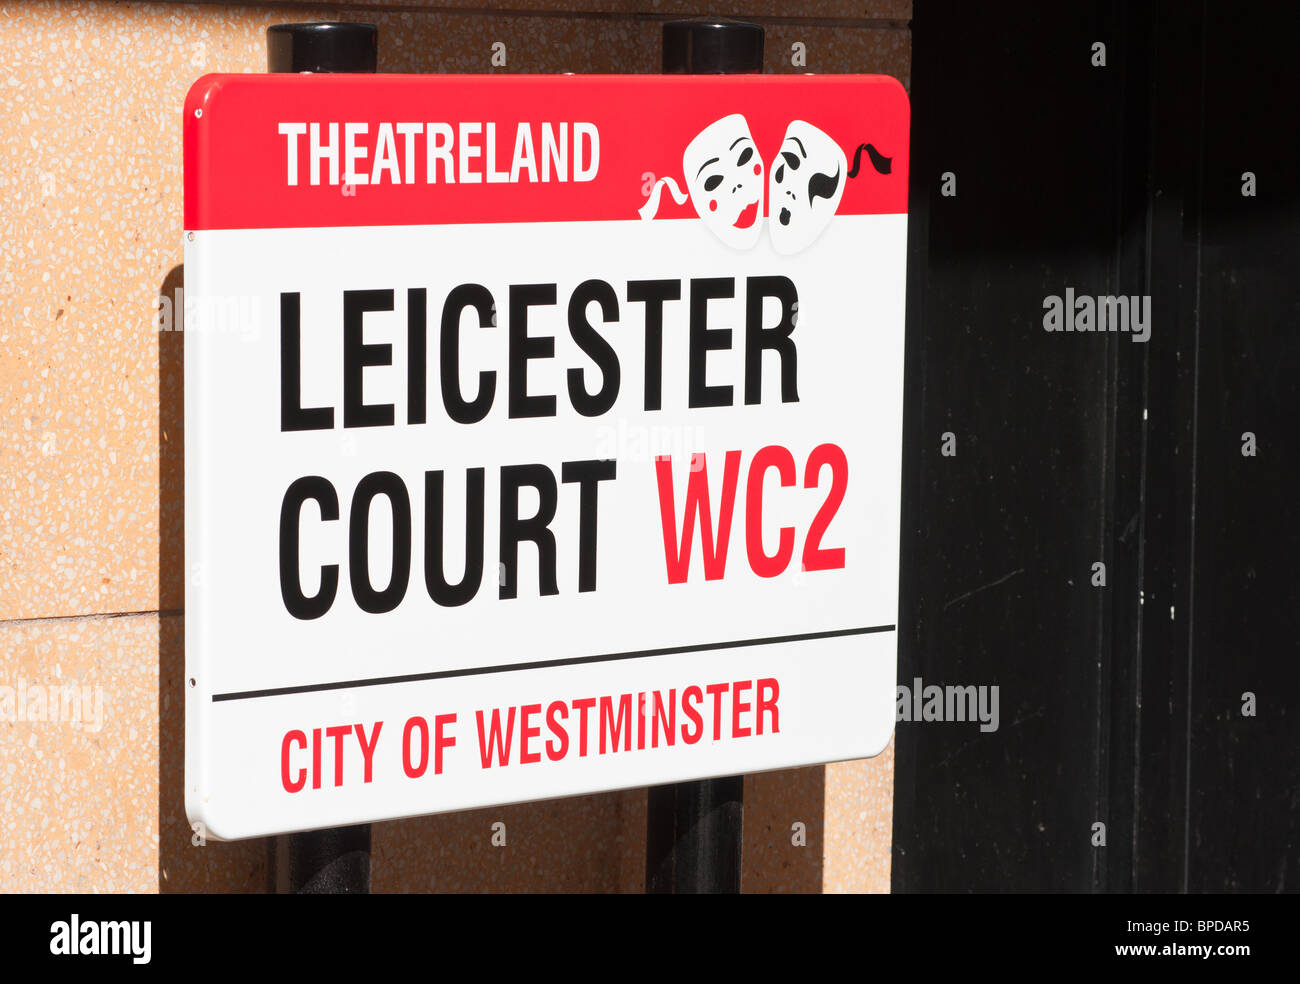 Theatreland sign - Stock Image